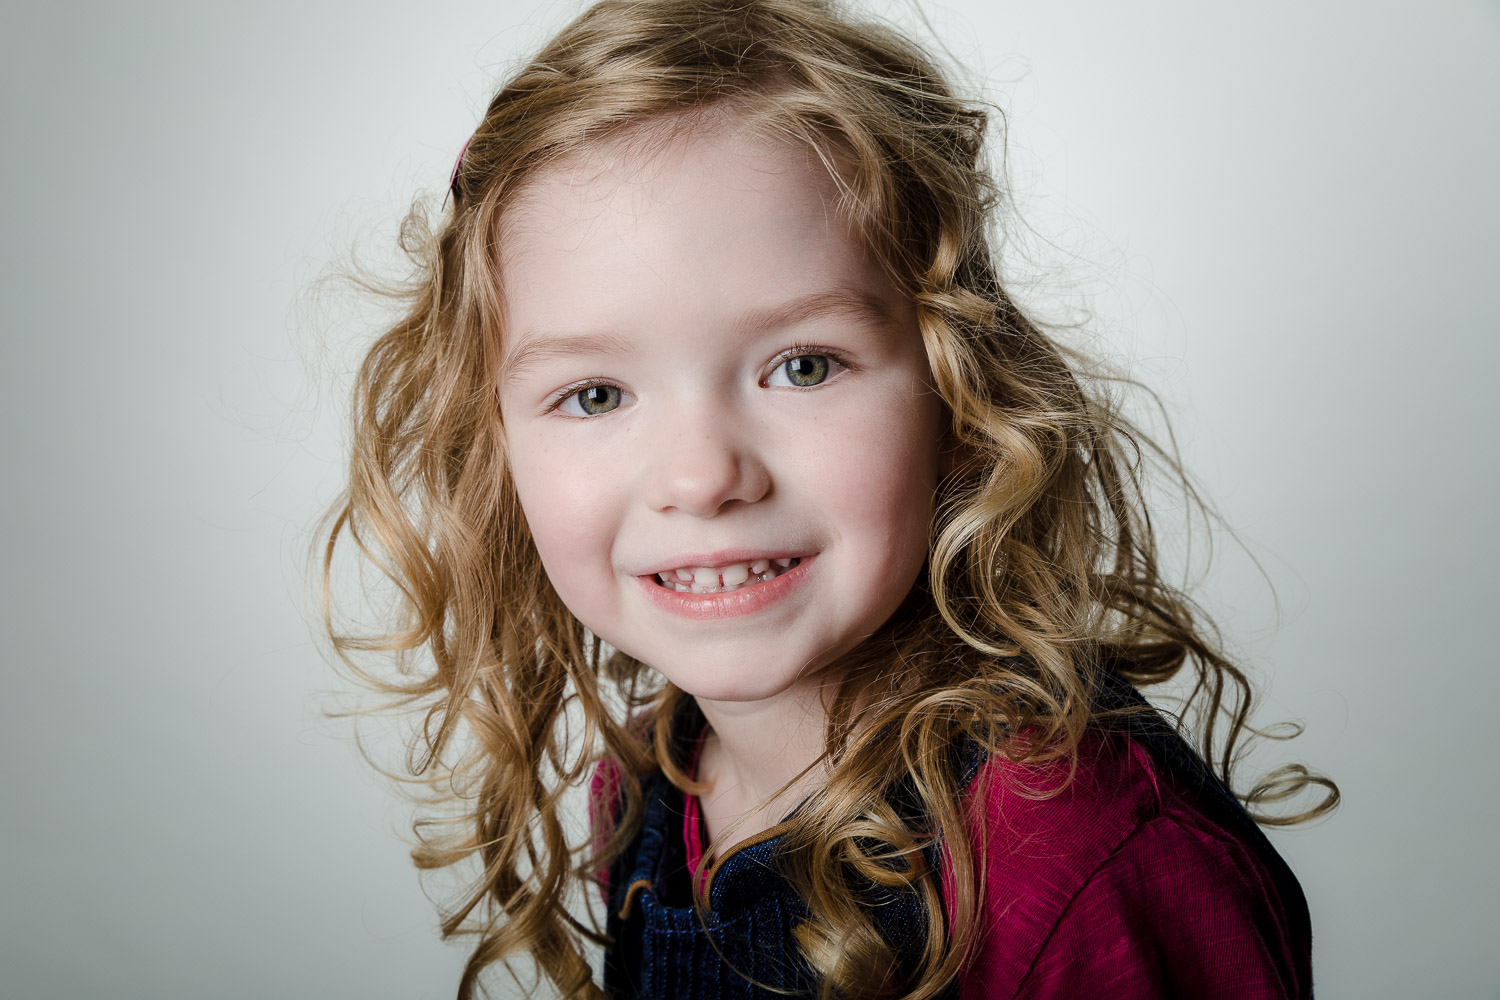 Isle of Wight Child portrait studio photography